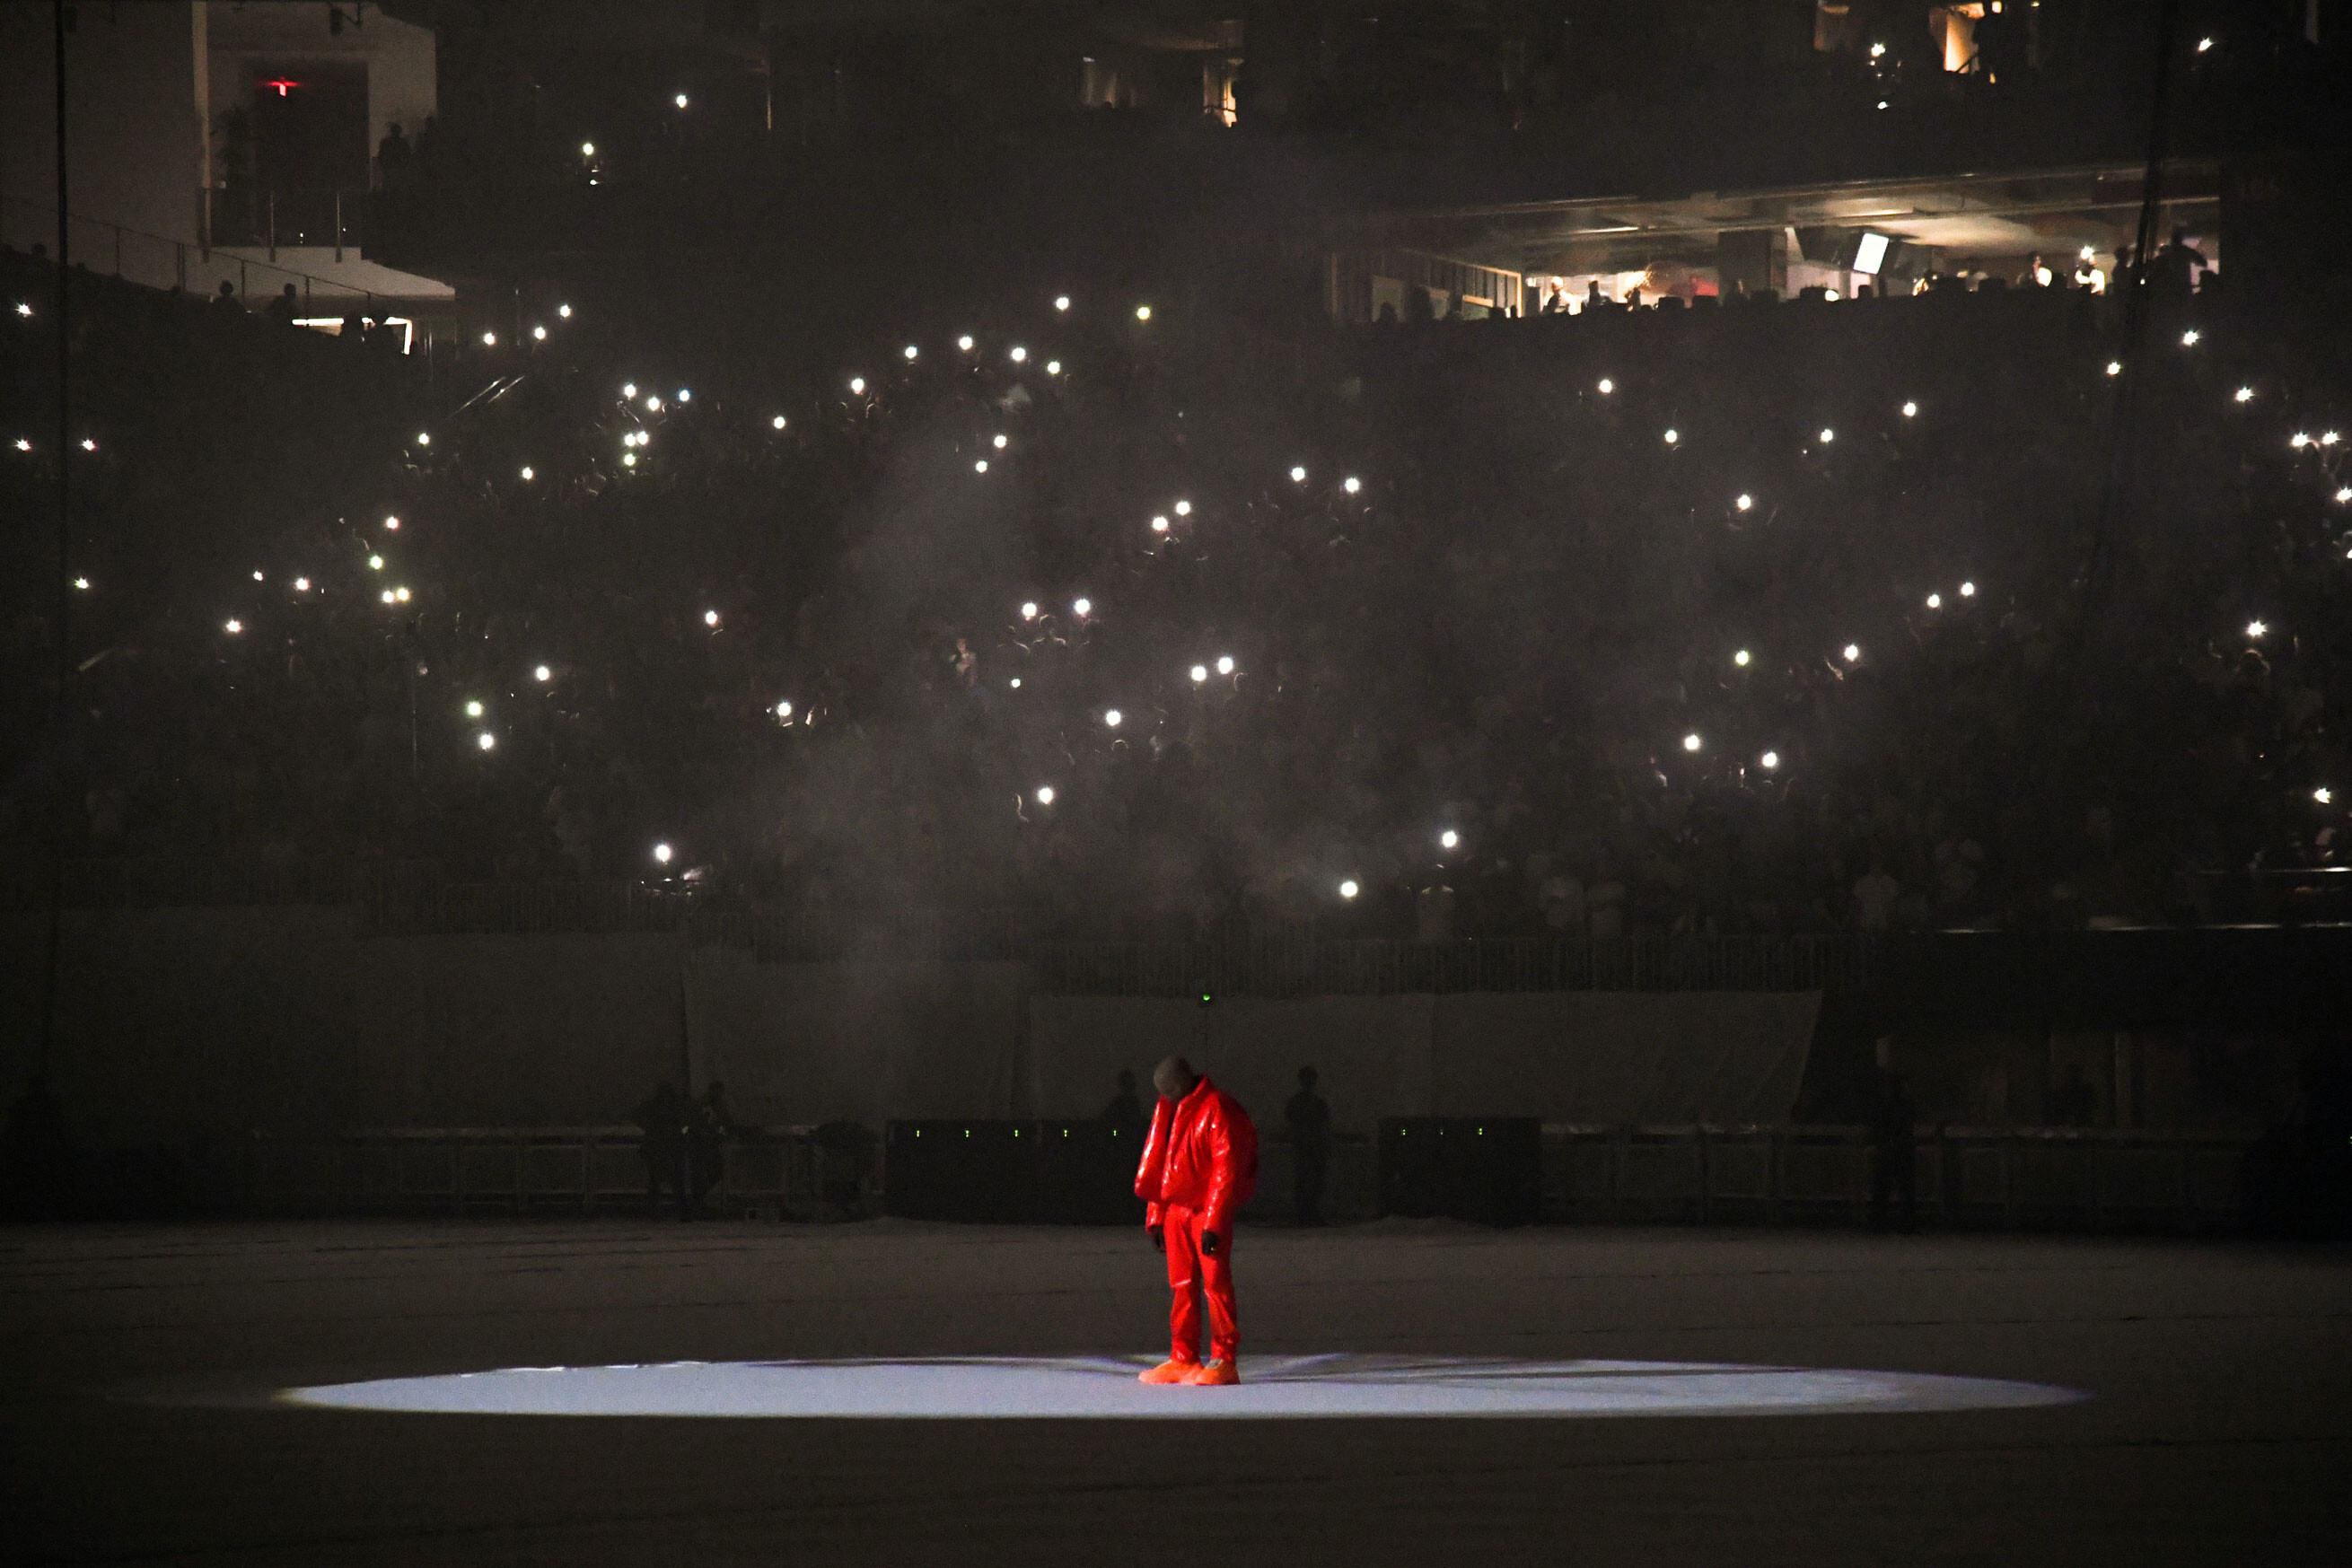 Kanye West's 'Donda' listening event: Everything you need to know